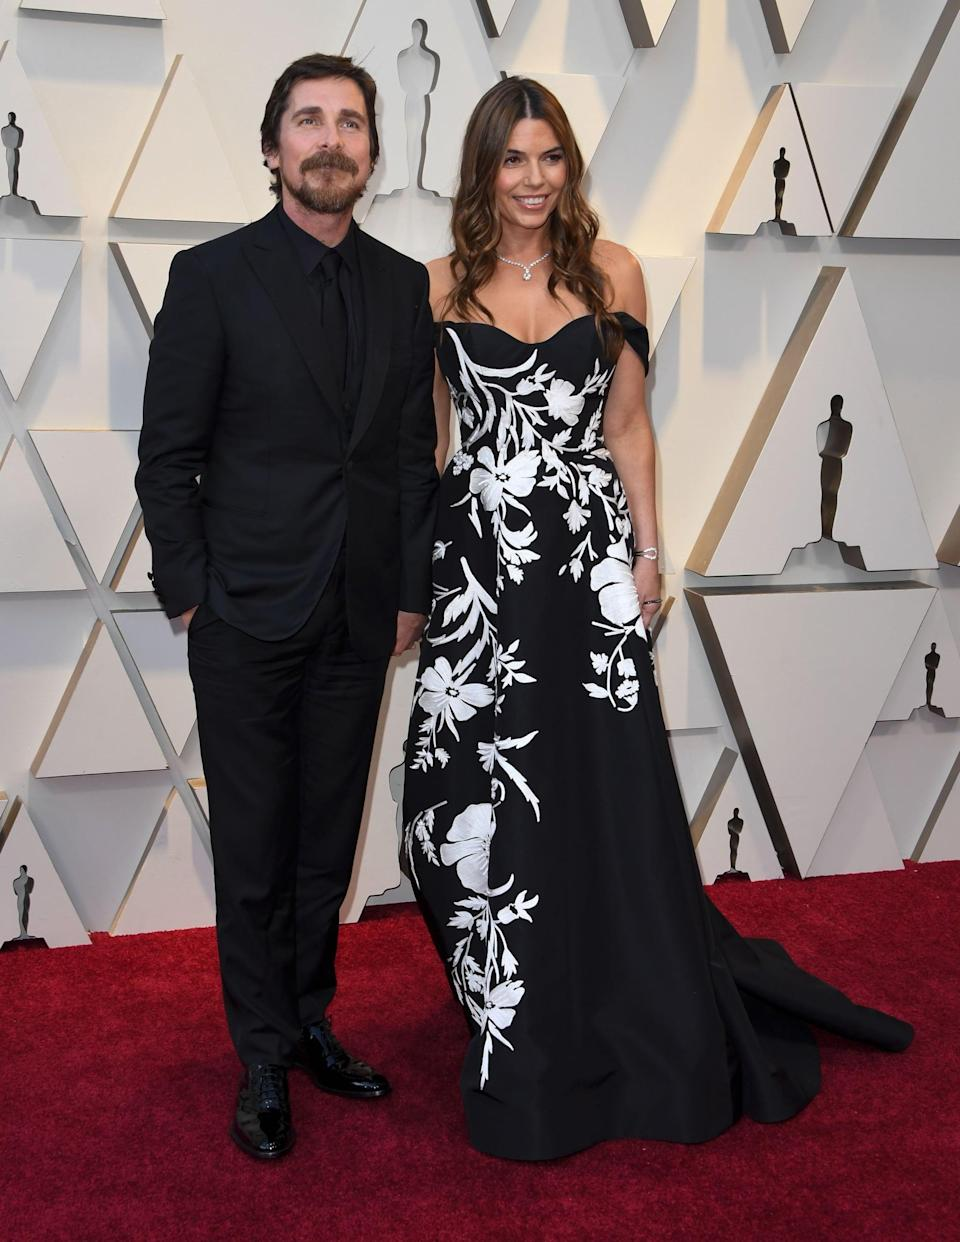 <p>Christian is wearing an all-black suit with Cartier jewels and Tod's shoes, and Sibi is wearing an off-the-shoulder black and white gown.</p>